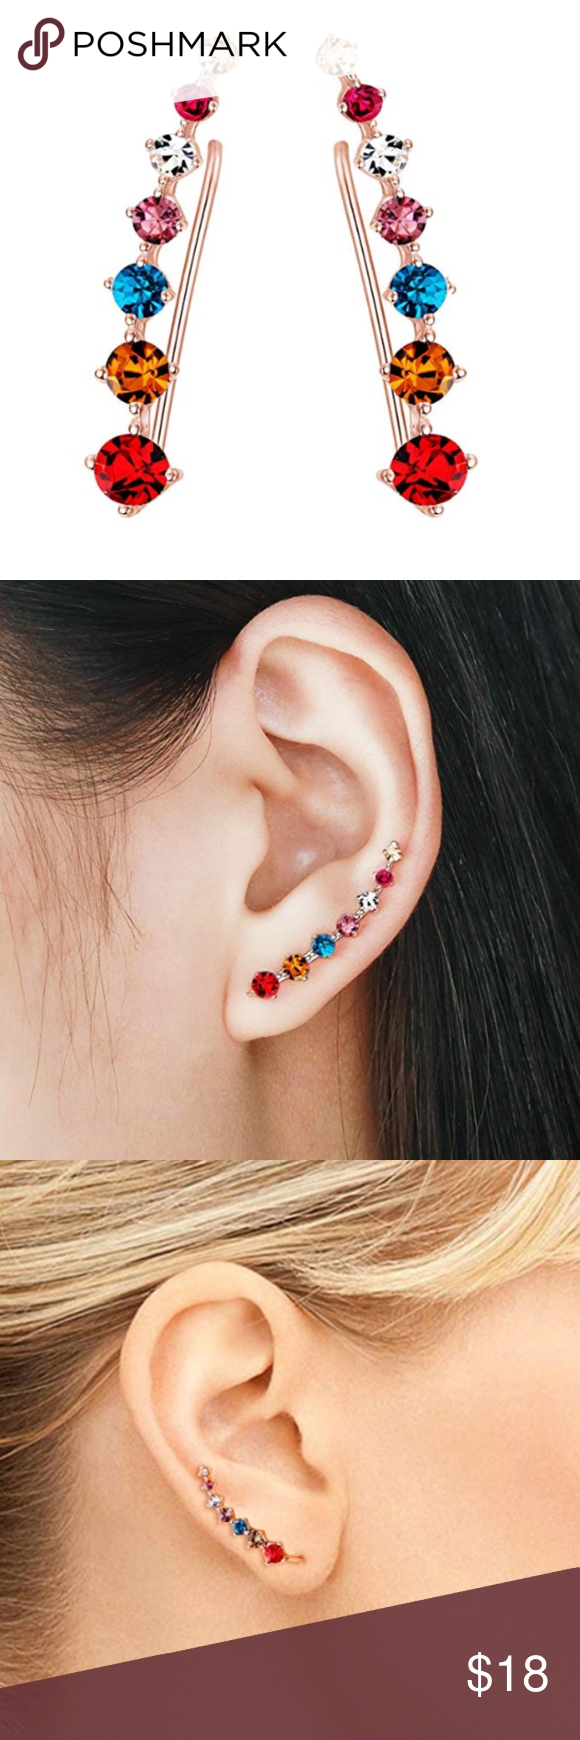 All Colors Hypoallergenic Piercing Cuffs Boutique Ear Cuff